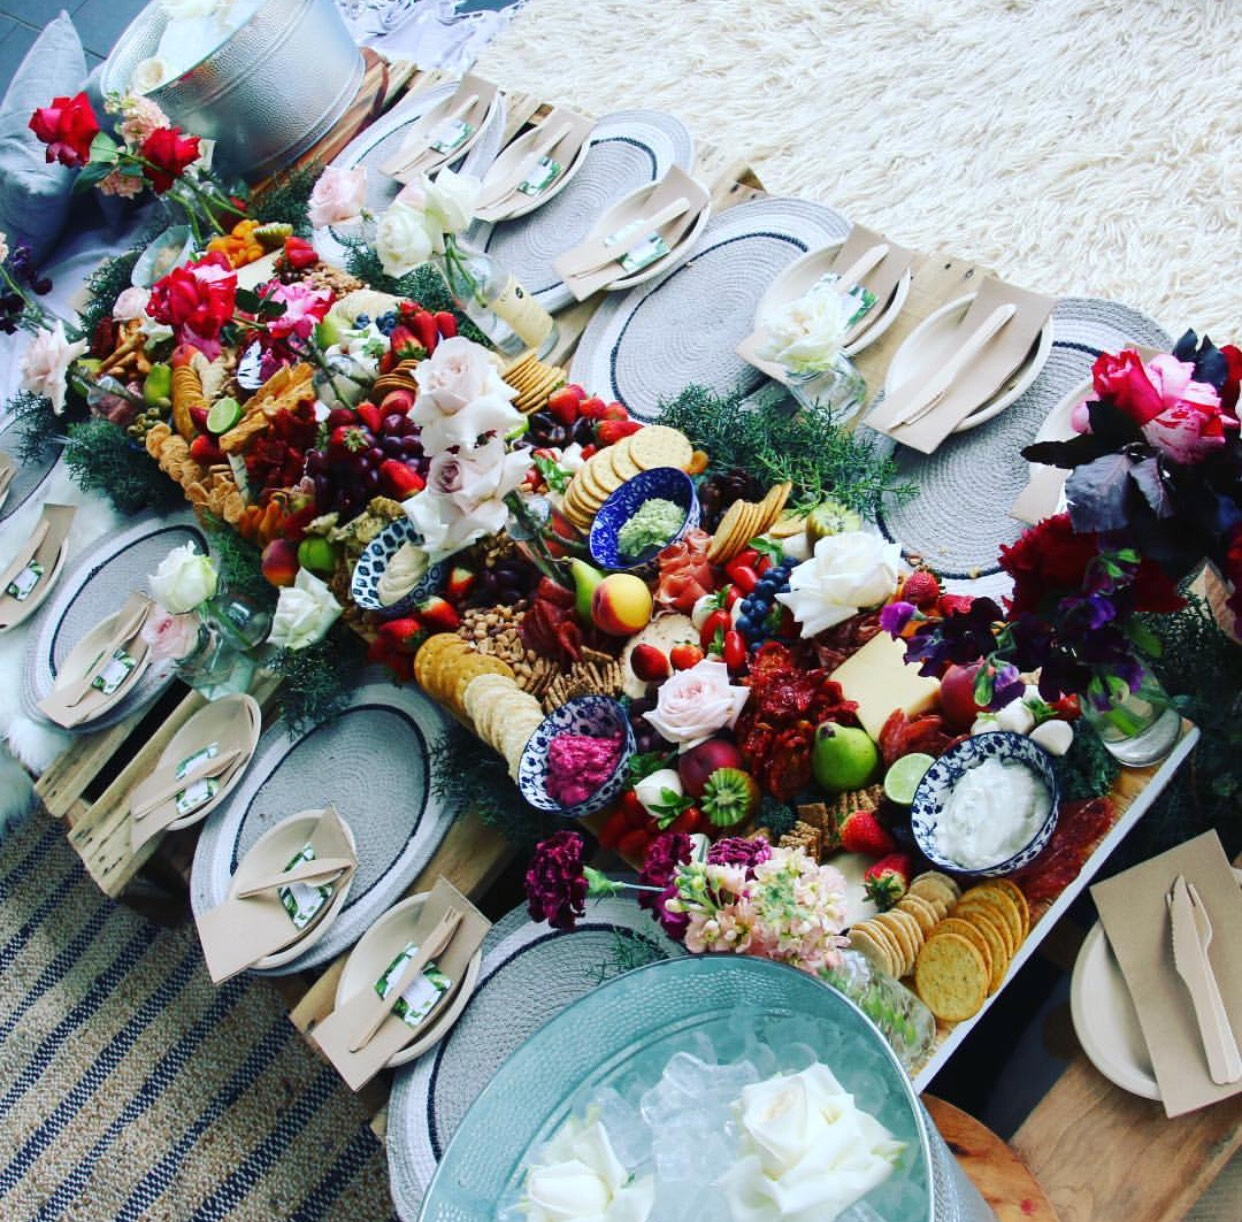 NORTHERN BEACHES SYDNEY WEDDING GRAZING TABLE PLATTER CATERING